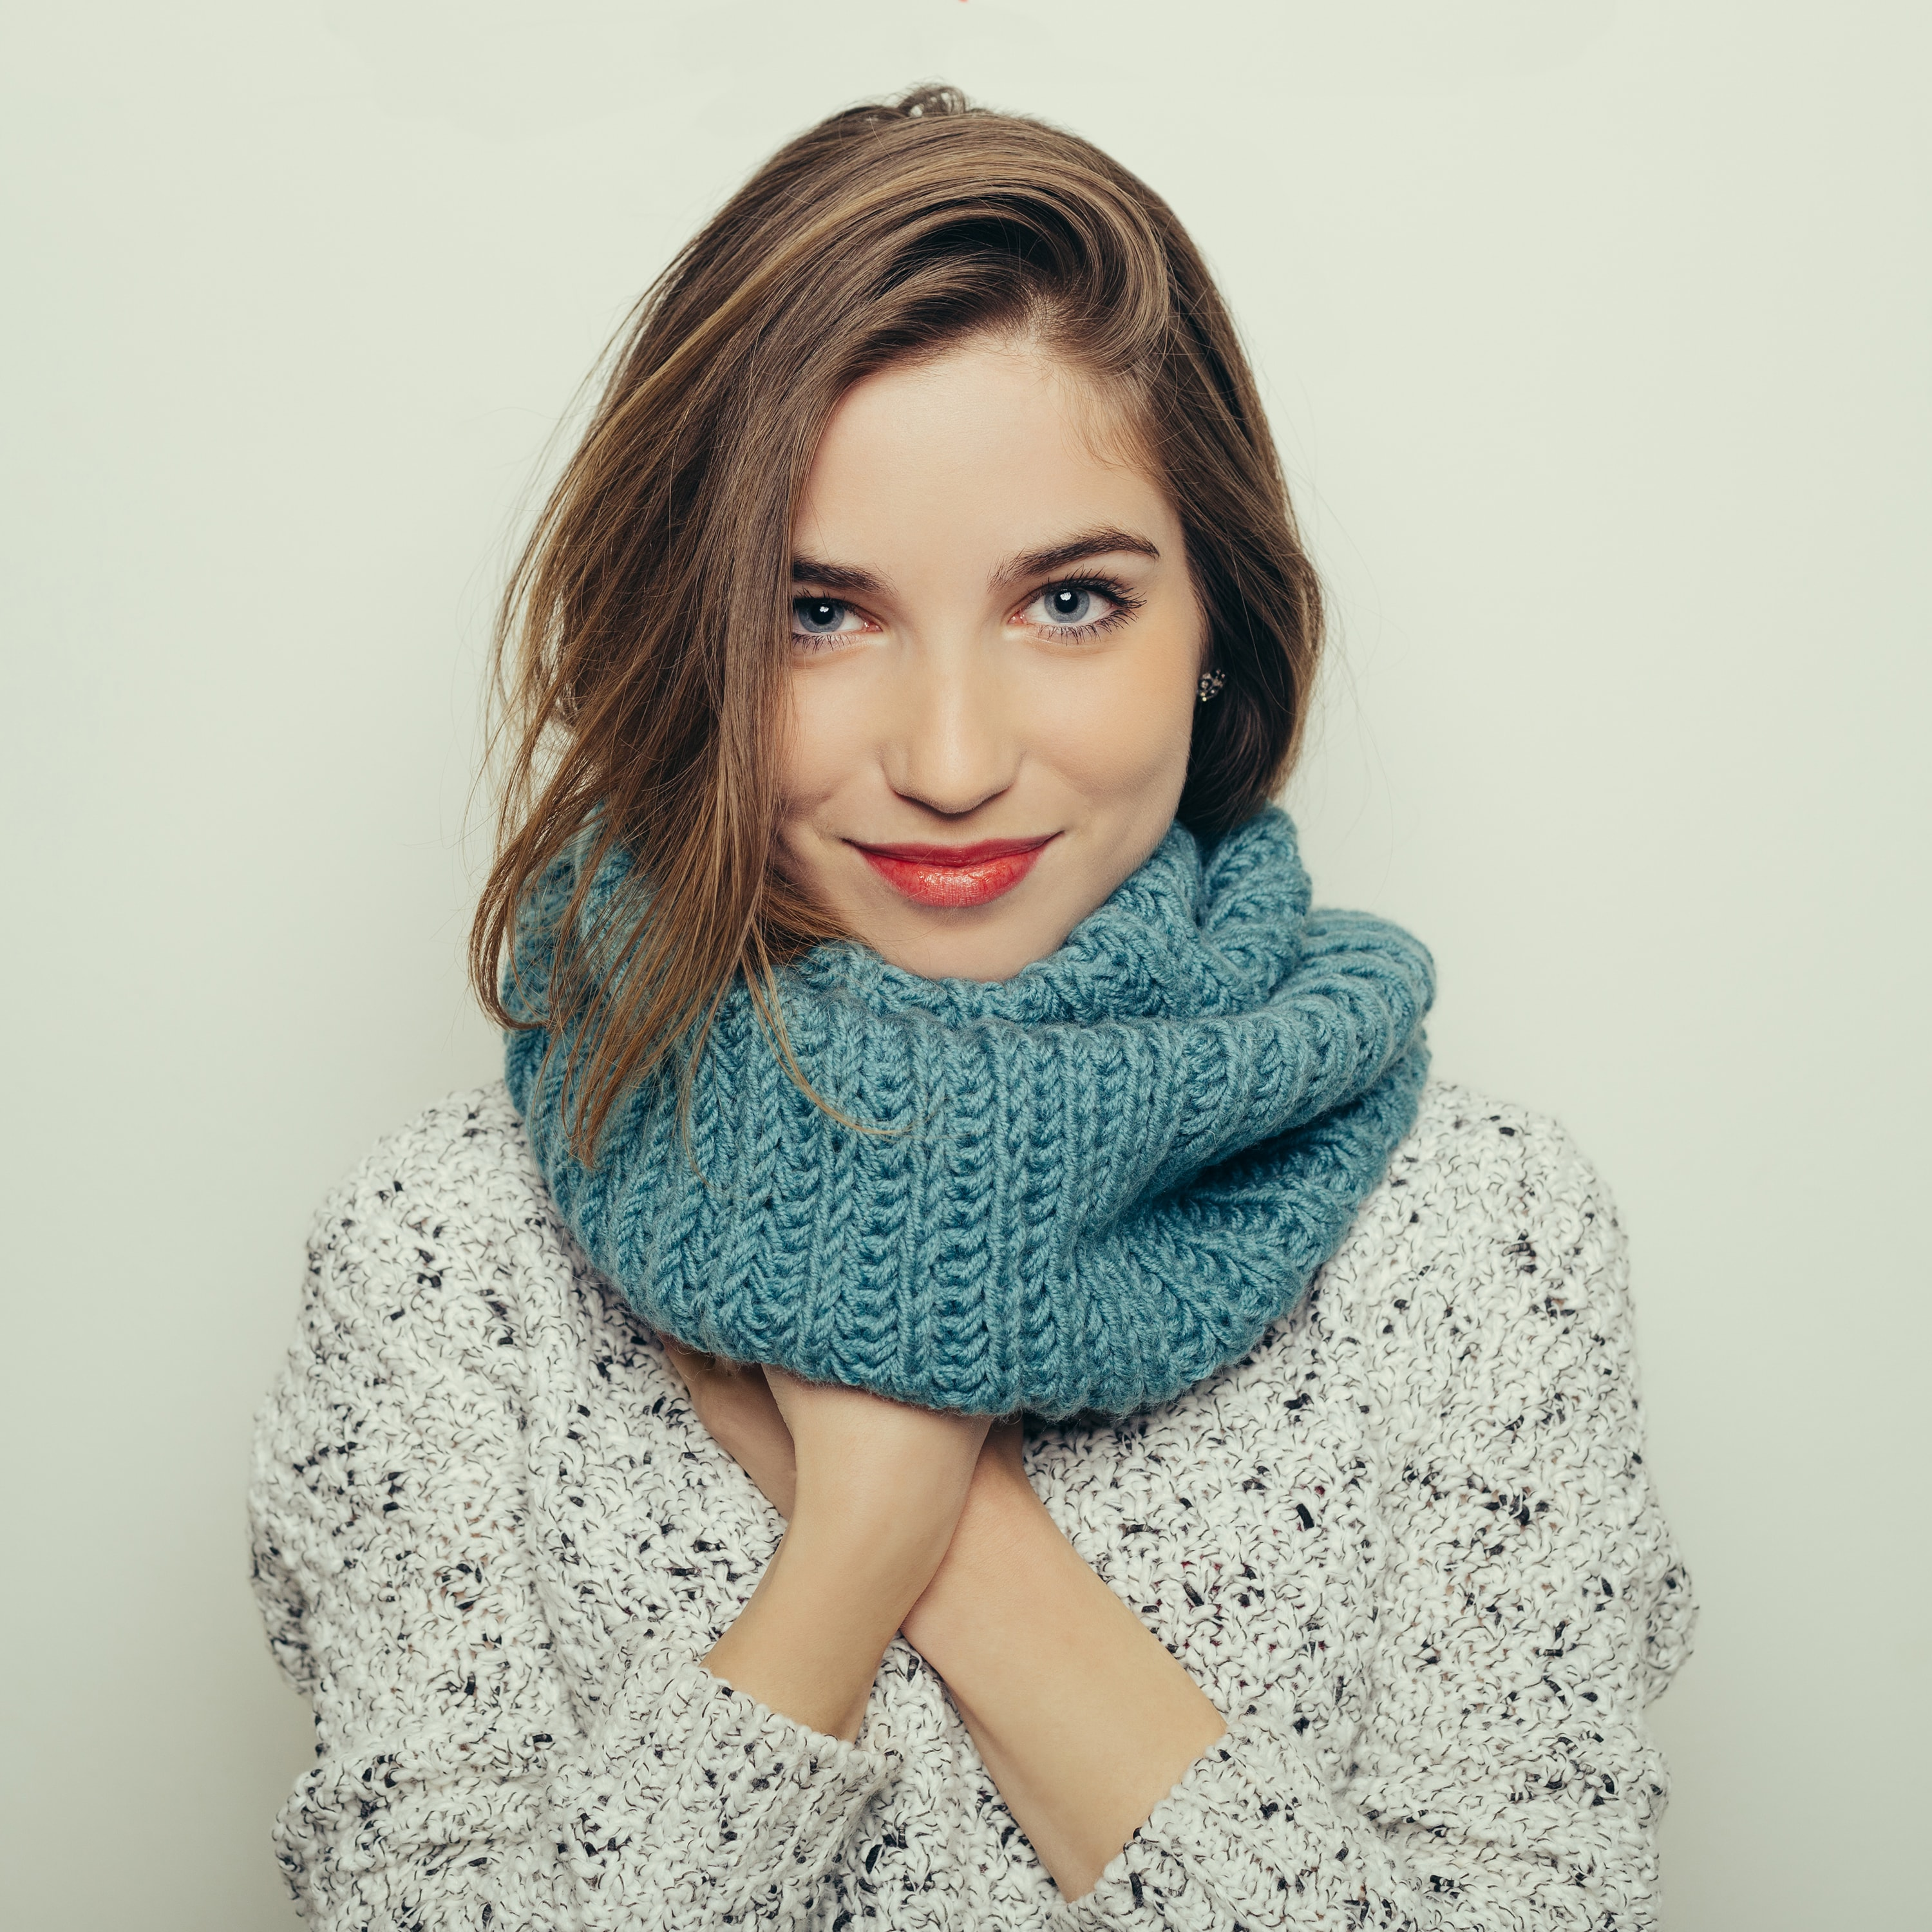 Hair mask: Shot of a young woman with chocolate brown hair, wearing a blue scarf and floral print top in a studio